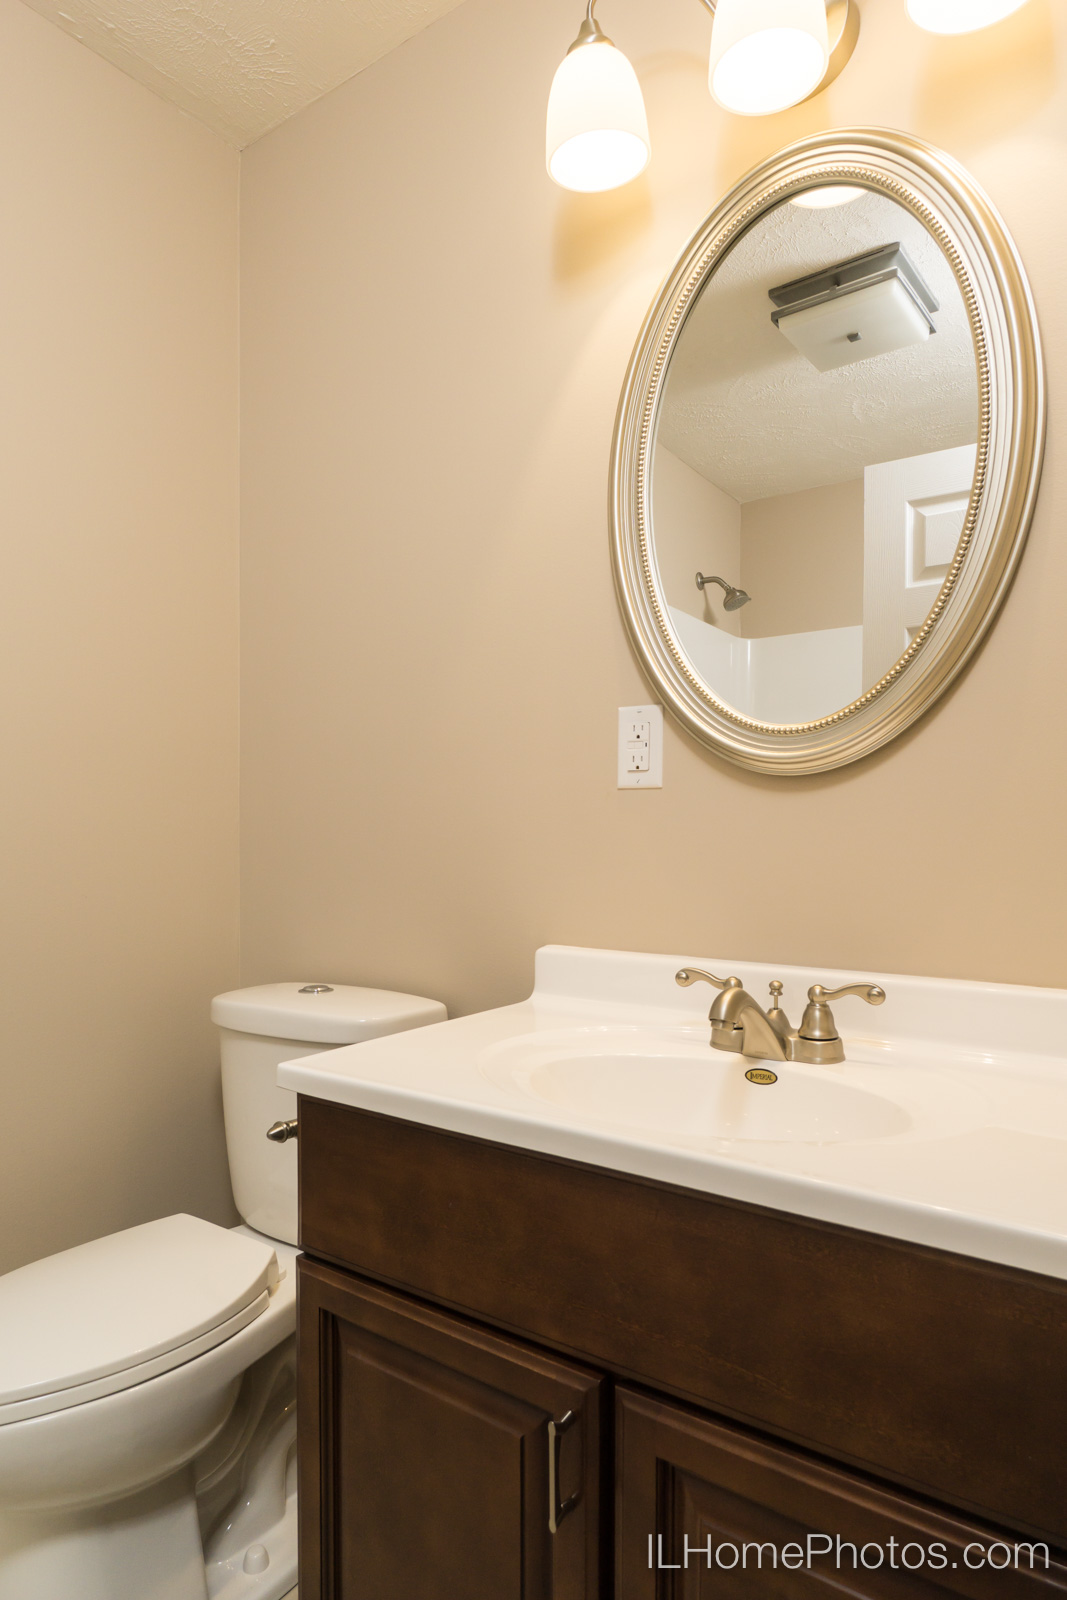 Interior bathroom photograph for real estate in Springfield :: Illinois Home Photography by Michael Gowin, Lincoln, IL